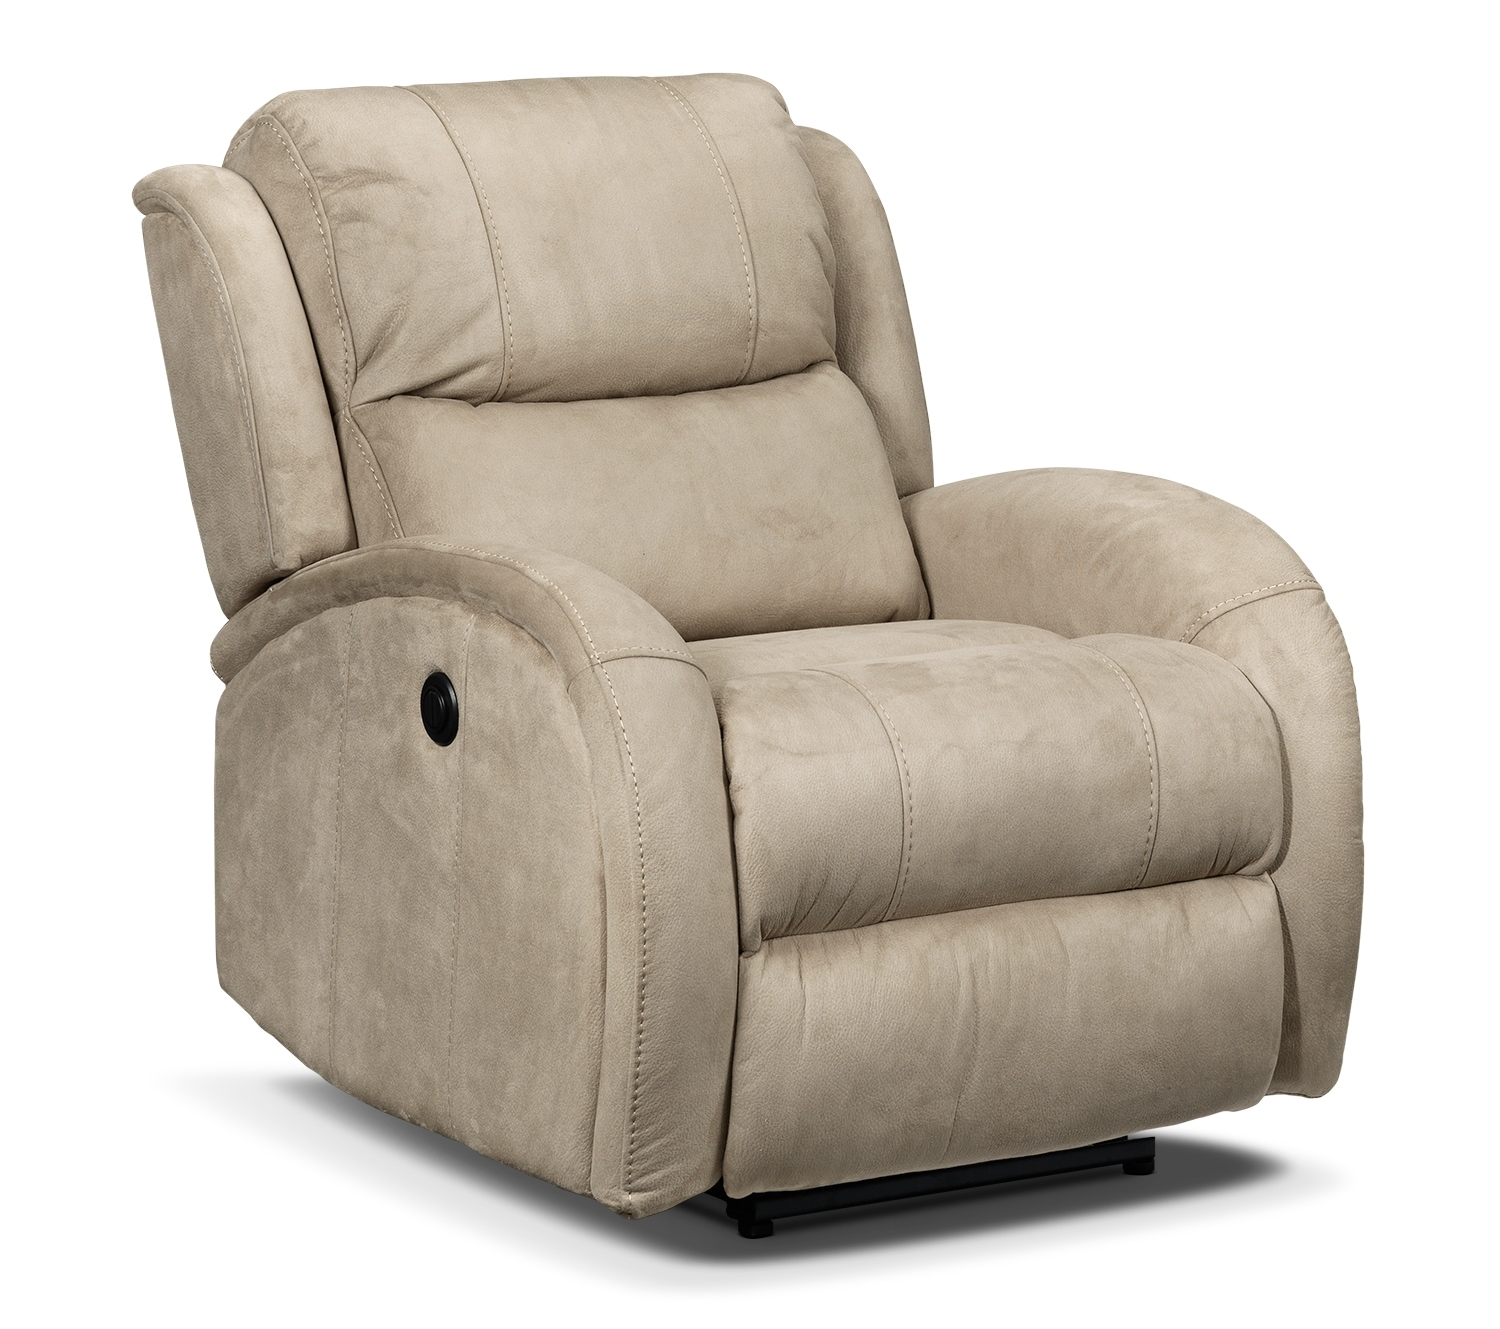 Living Room Furniture - DiCarlo Power Recliner - Beige